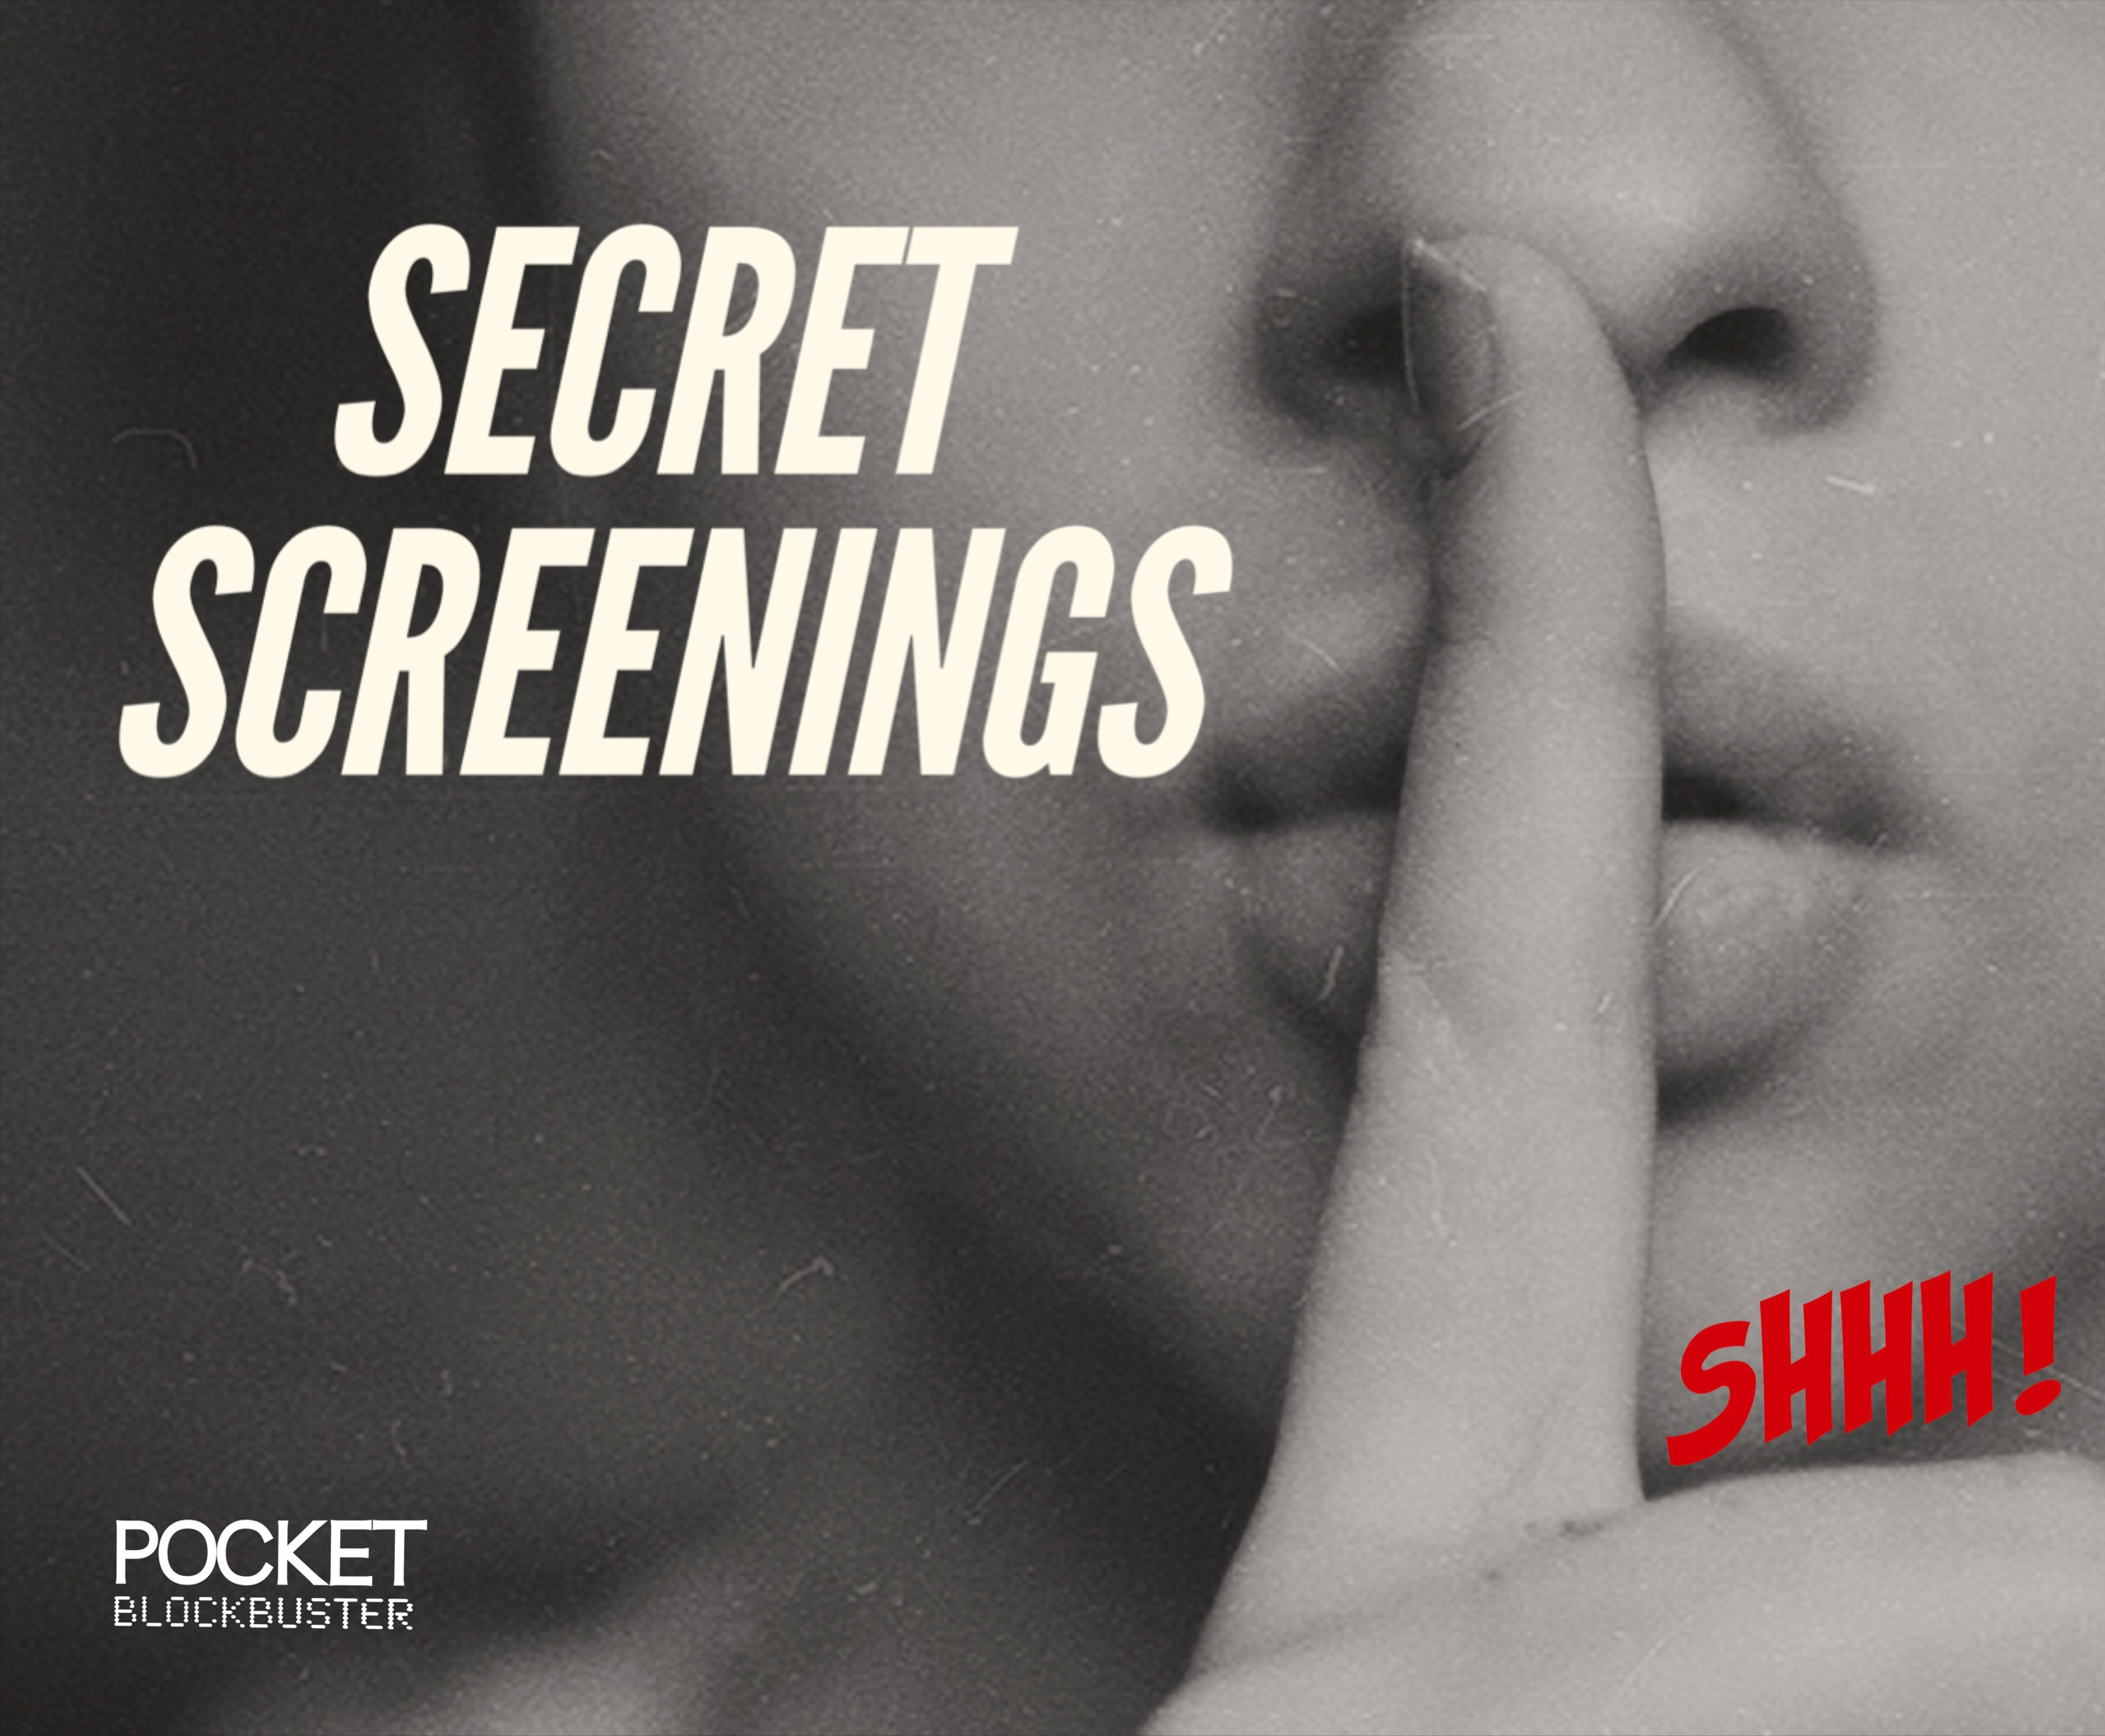 Secret Screenings - h Club app thumbnail.jpeg